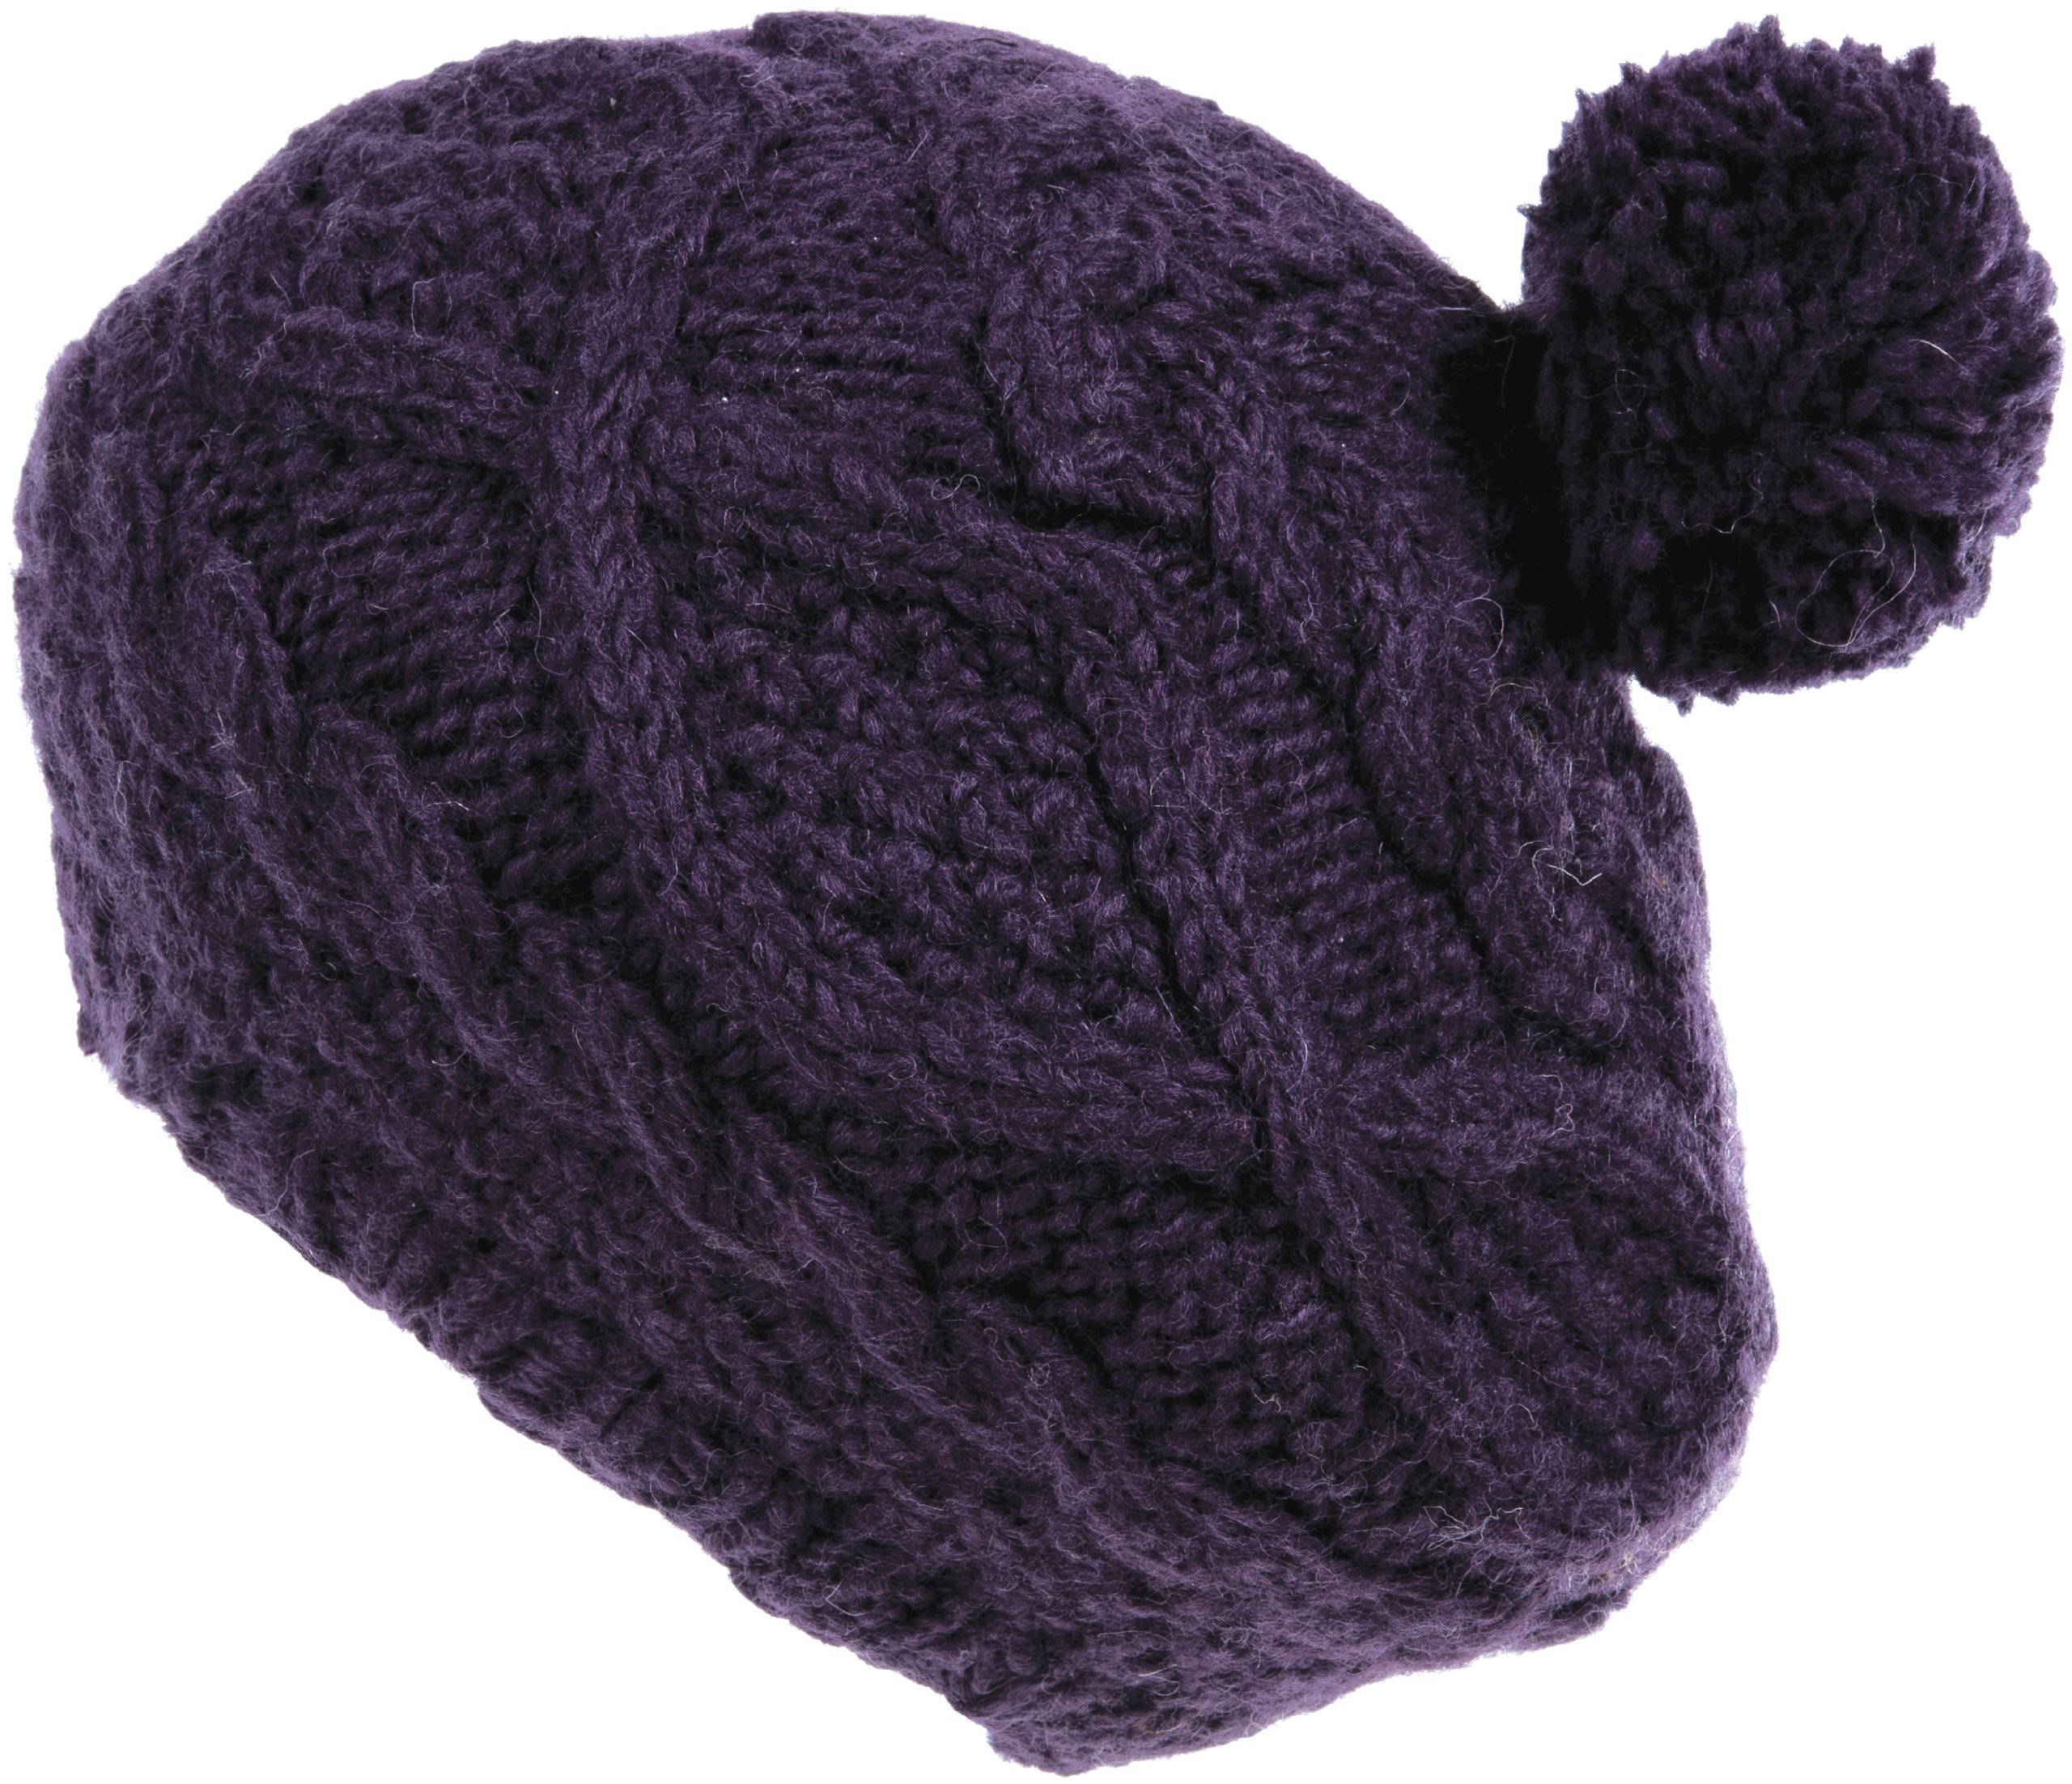 Nirvanna Designs CH701 Wide Cable Beret with Fleece and Pom, Prune by Nirvanna Designs (Image #1)